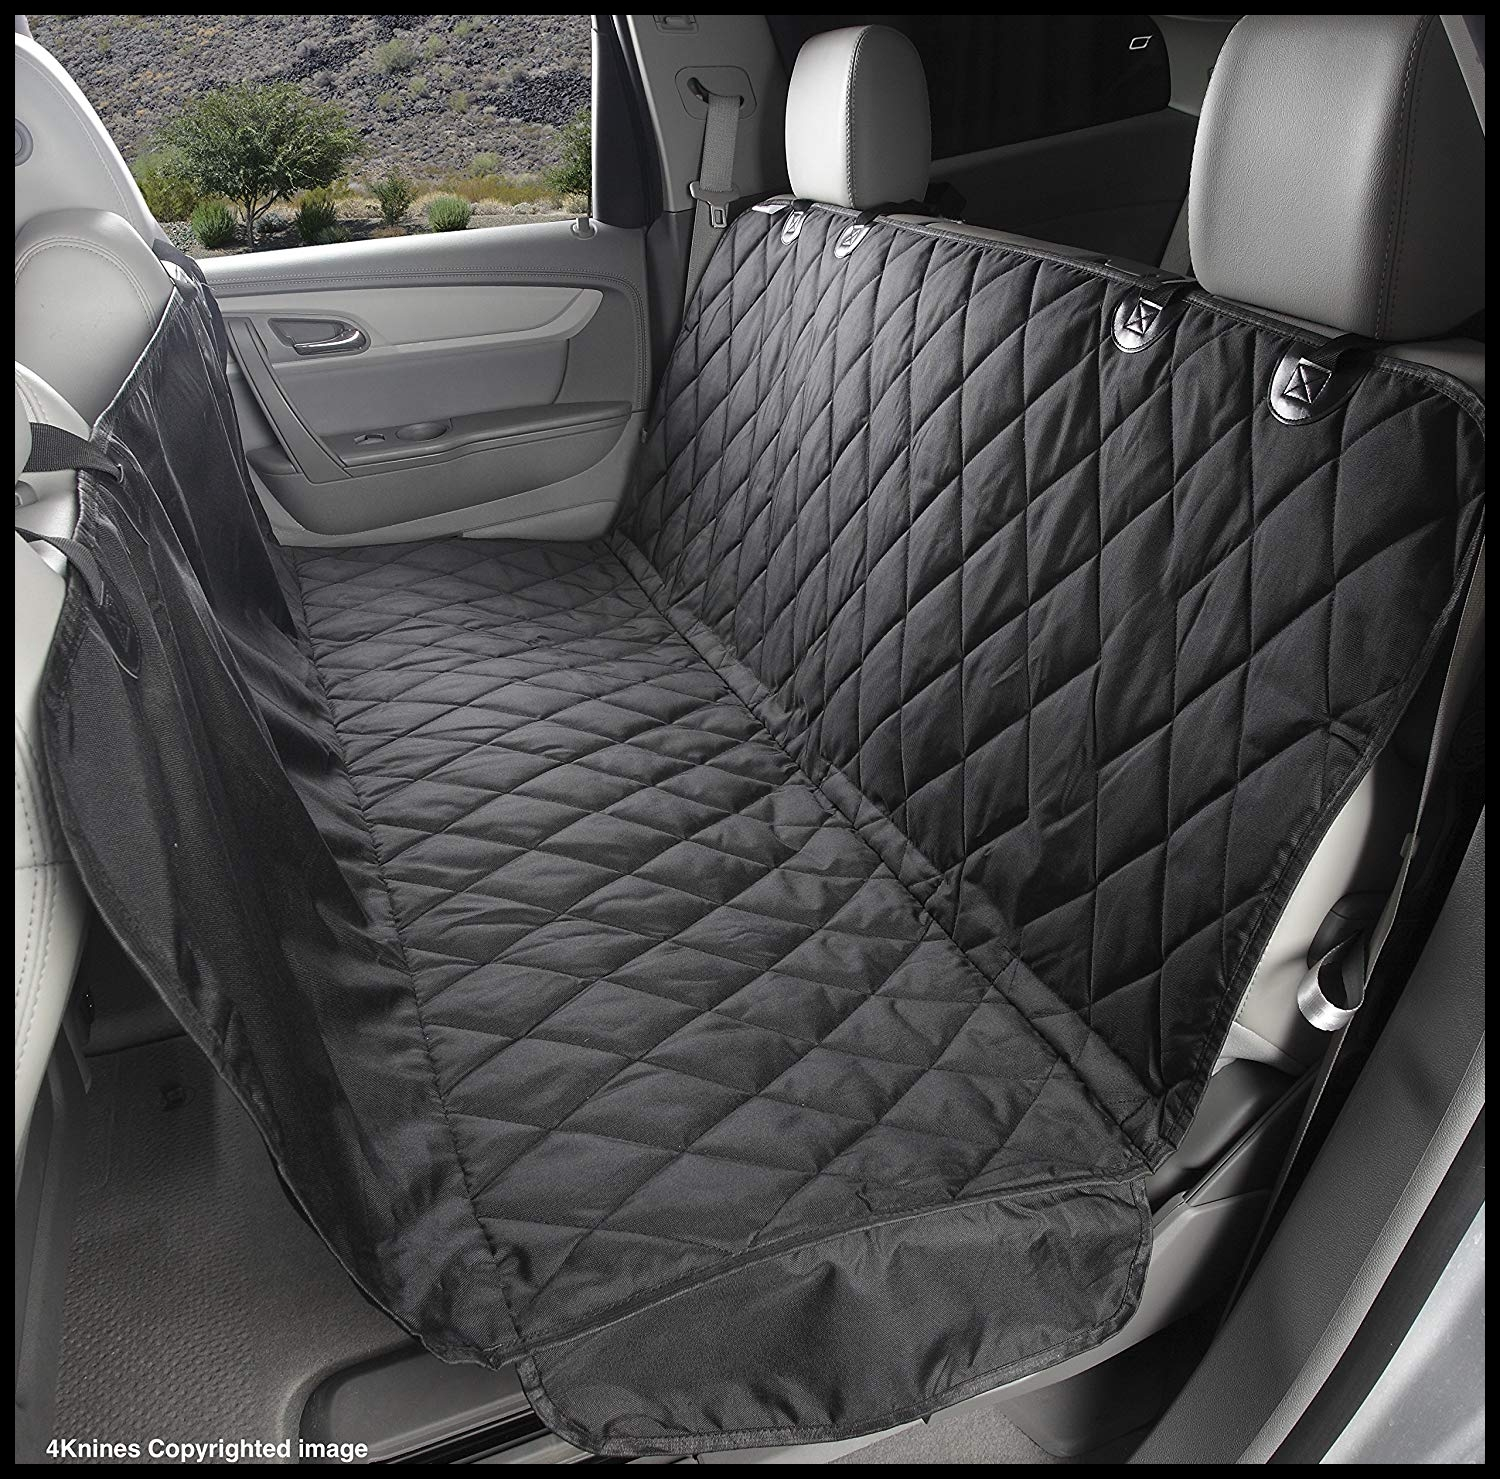 4Knines Rear Bench Seat Waterproof Non Slip Cover with Hammock Lifetime Warranty Extra Black Amazon Pet Supplies